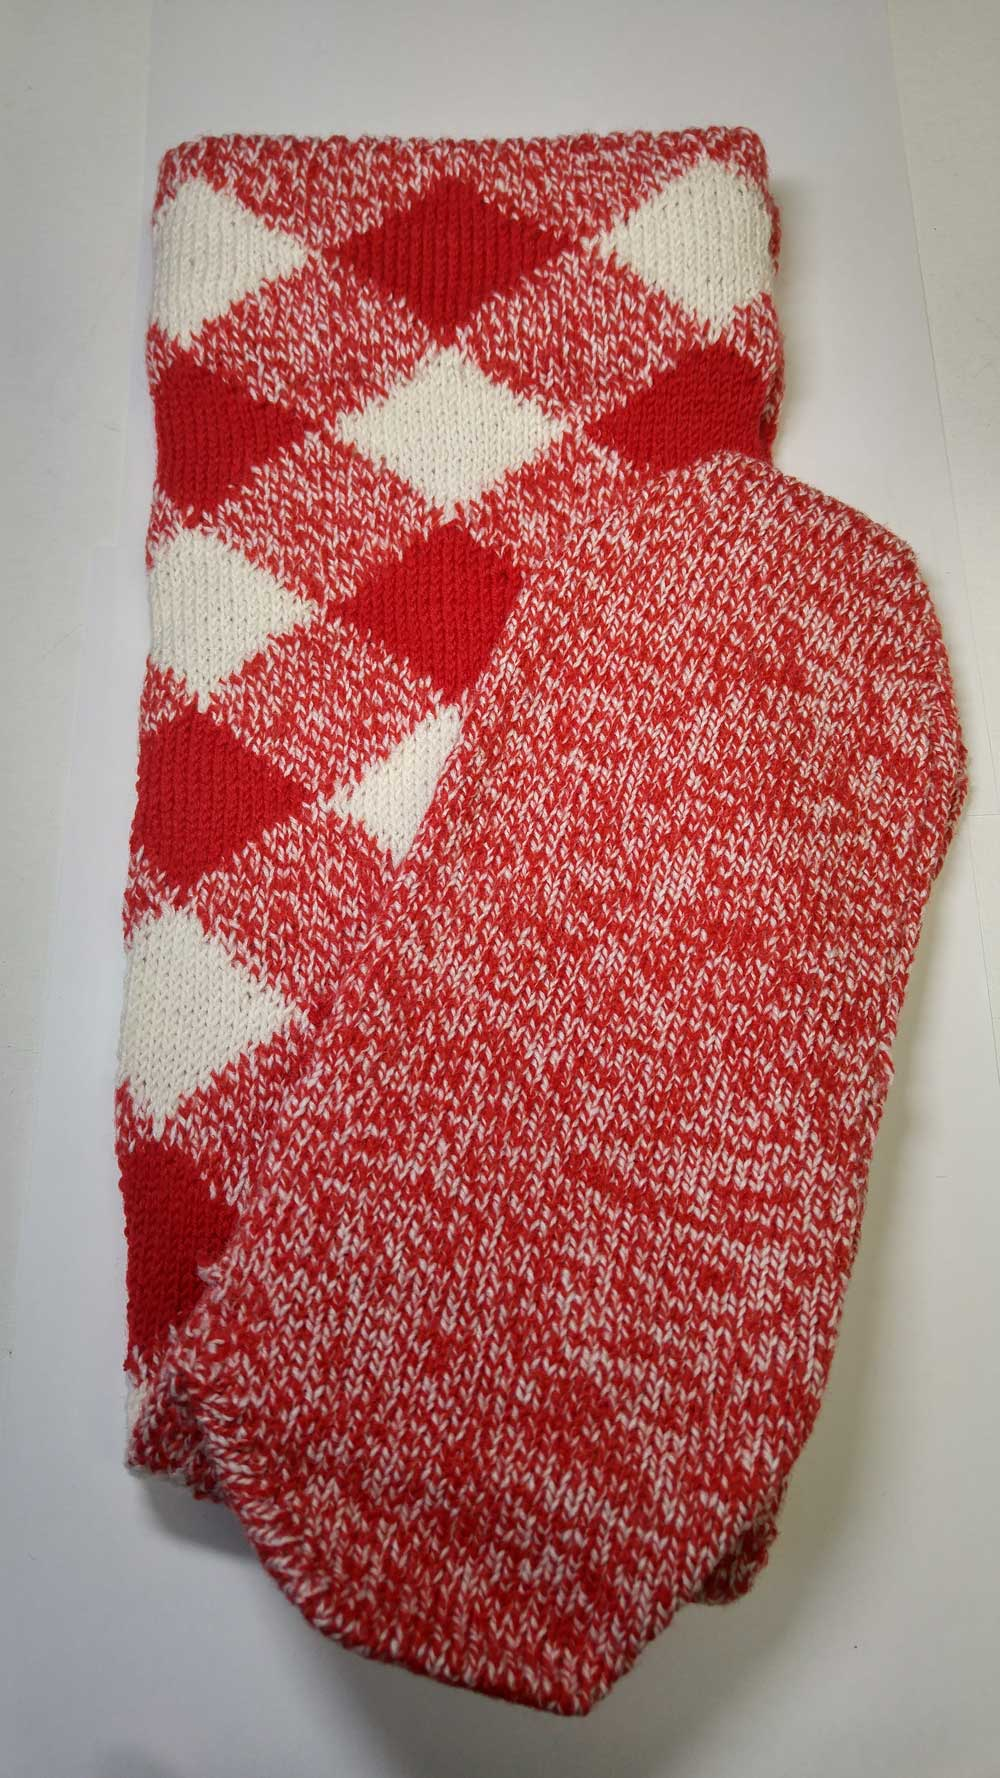 Hose: Red/White, Mach Knit